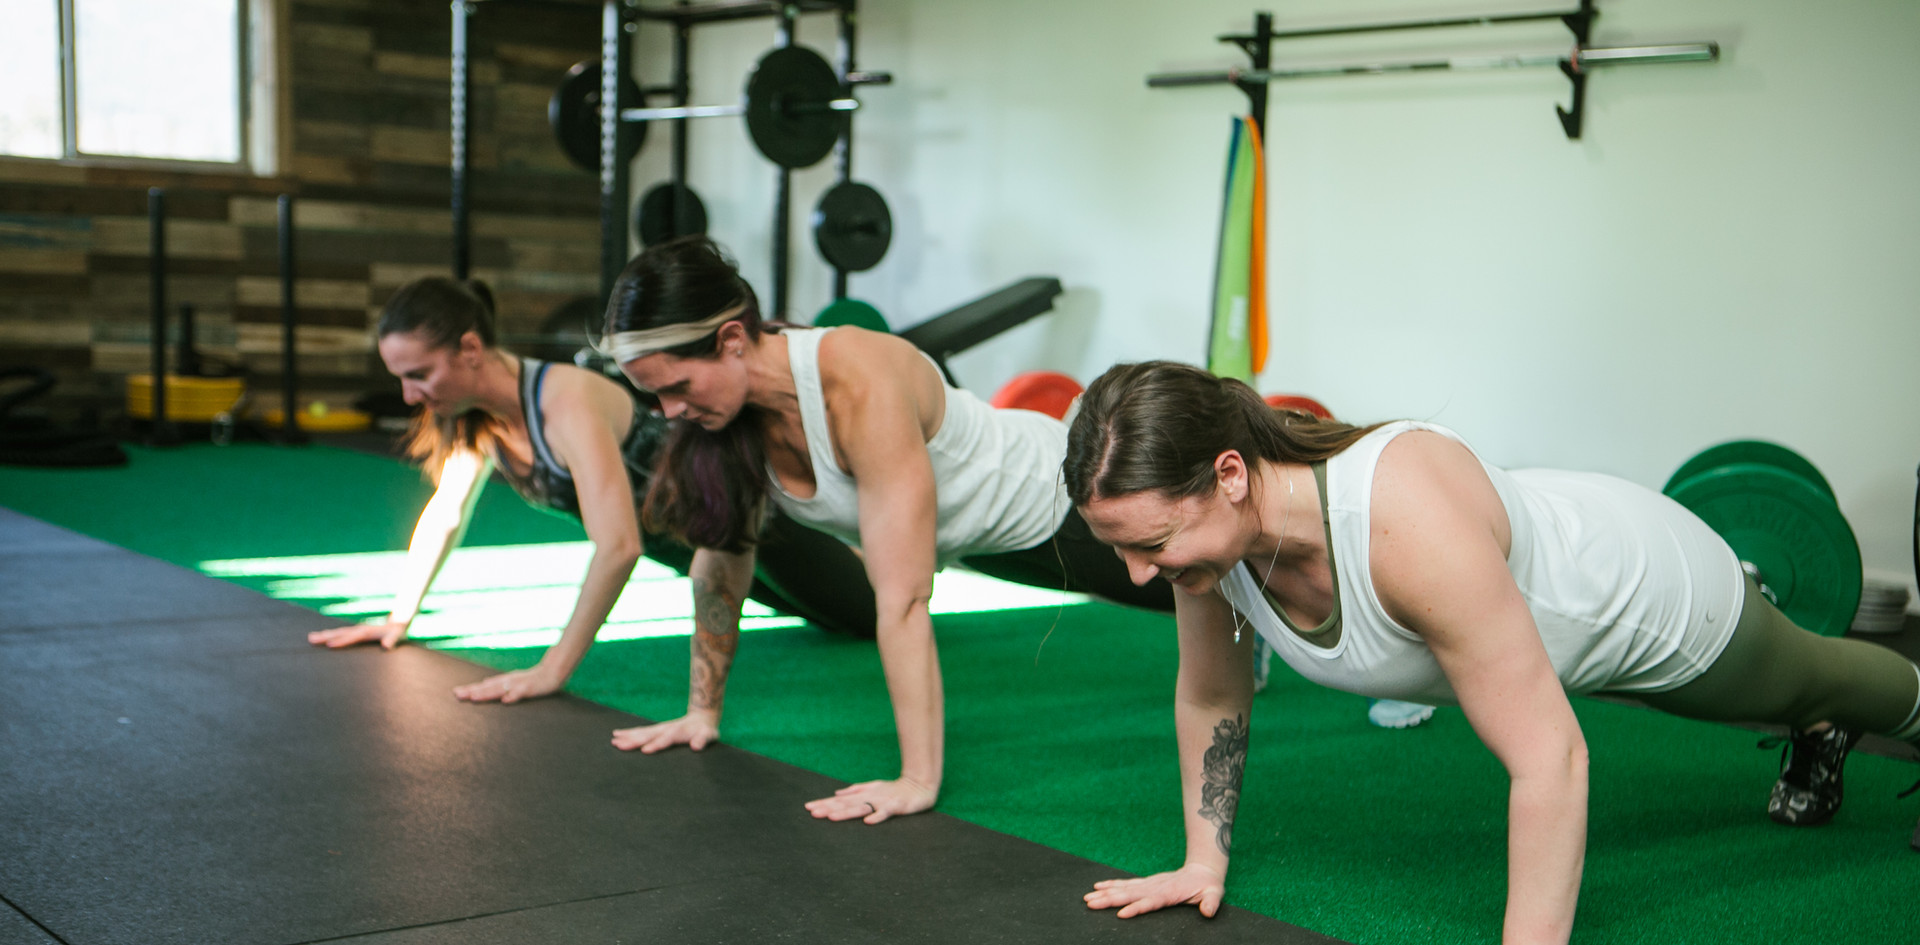 Need accountability?? Working out is always better with friends!